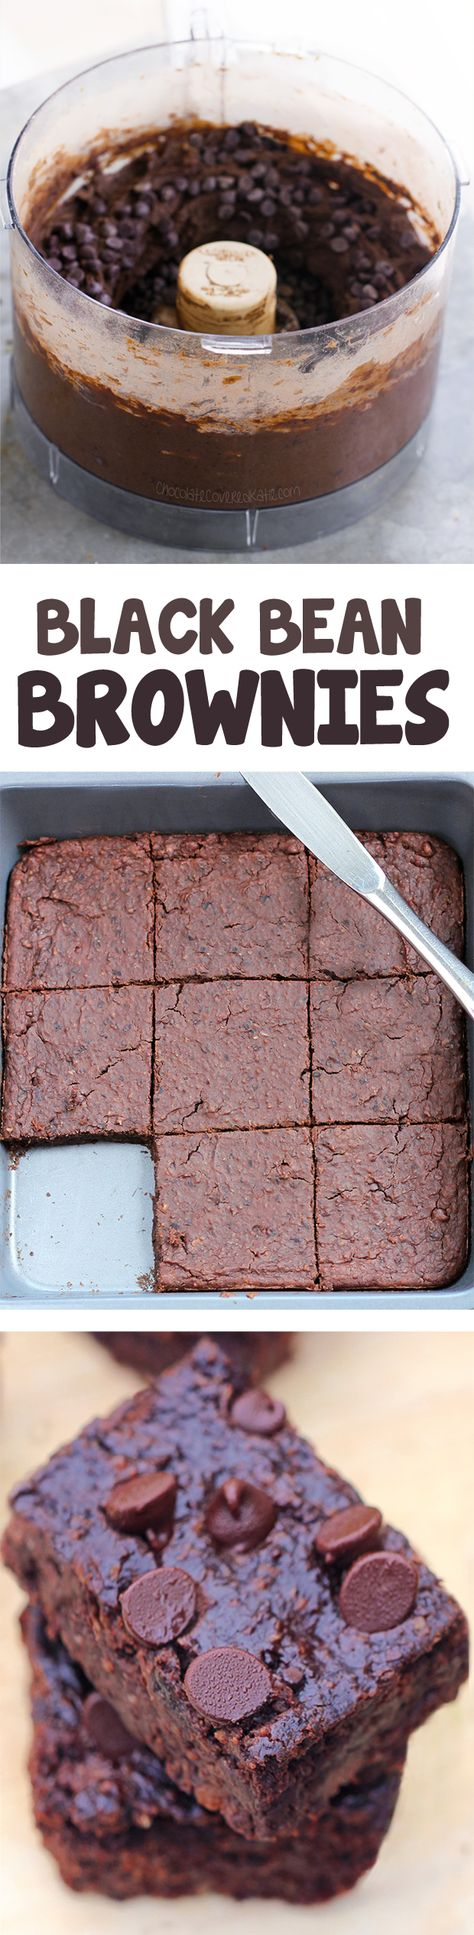 Black Bean Brownies – No Flour Required